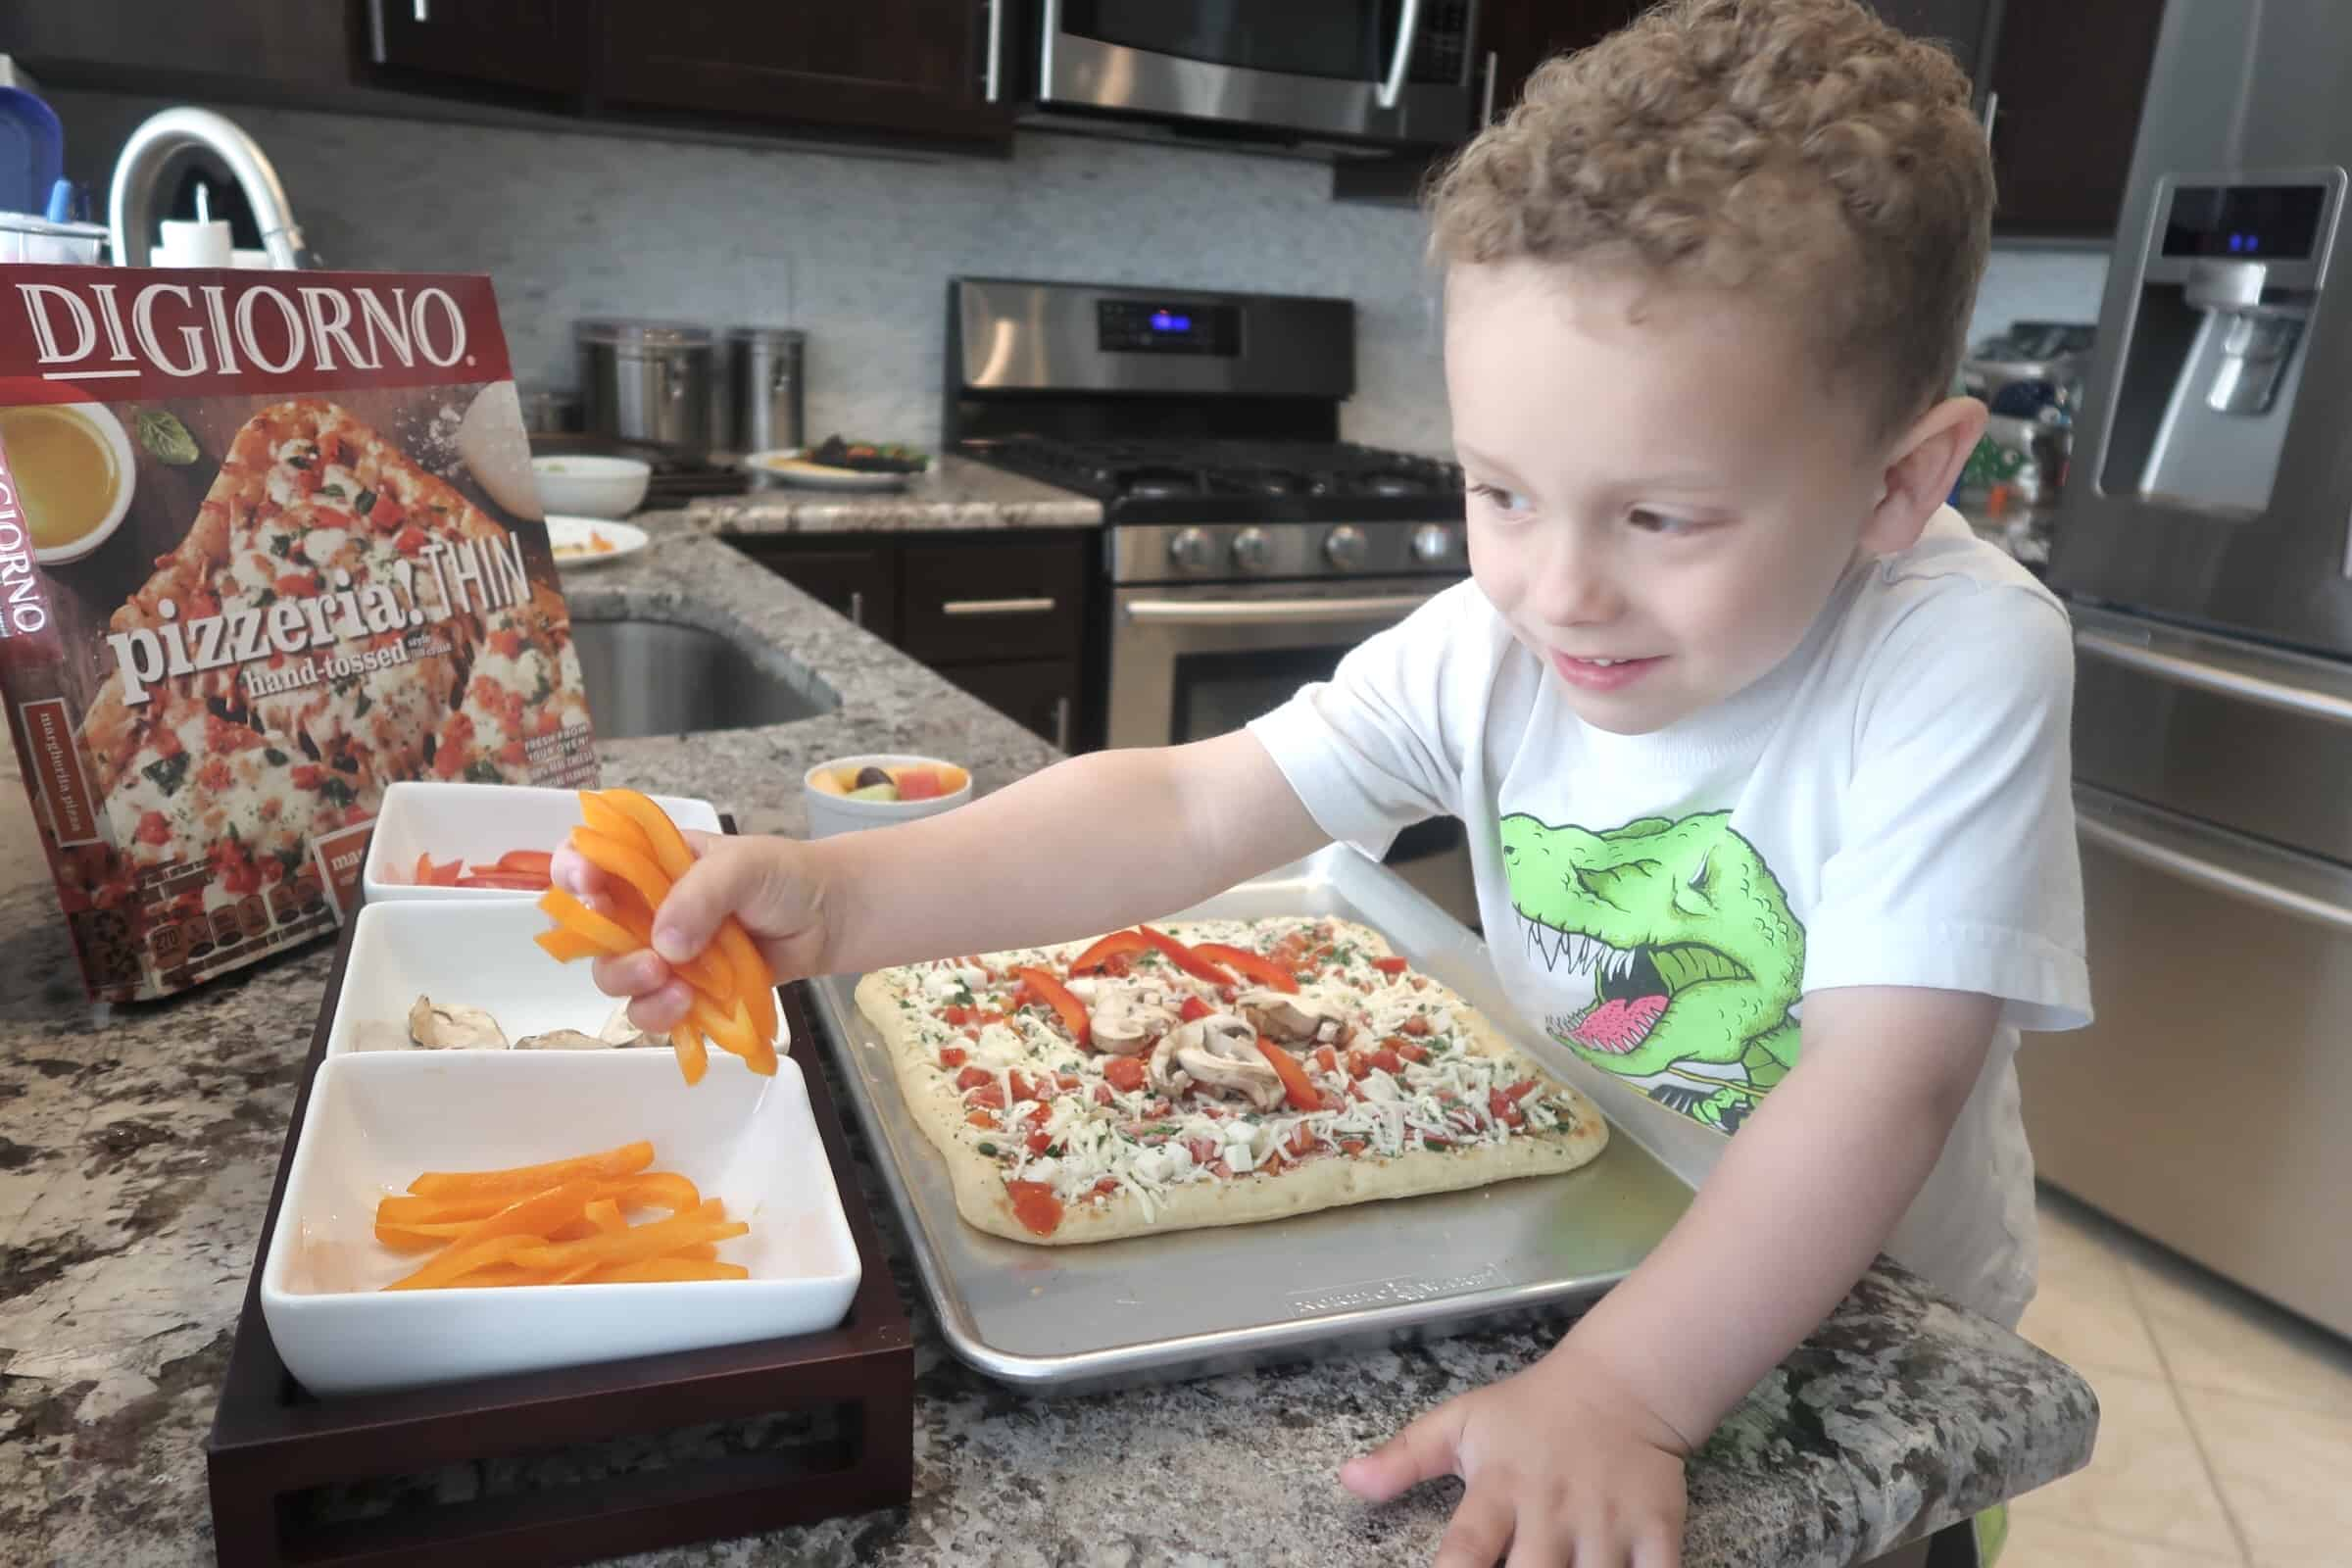 child adds vegetables to pizza